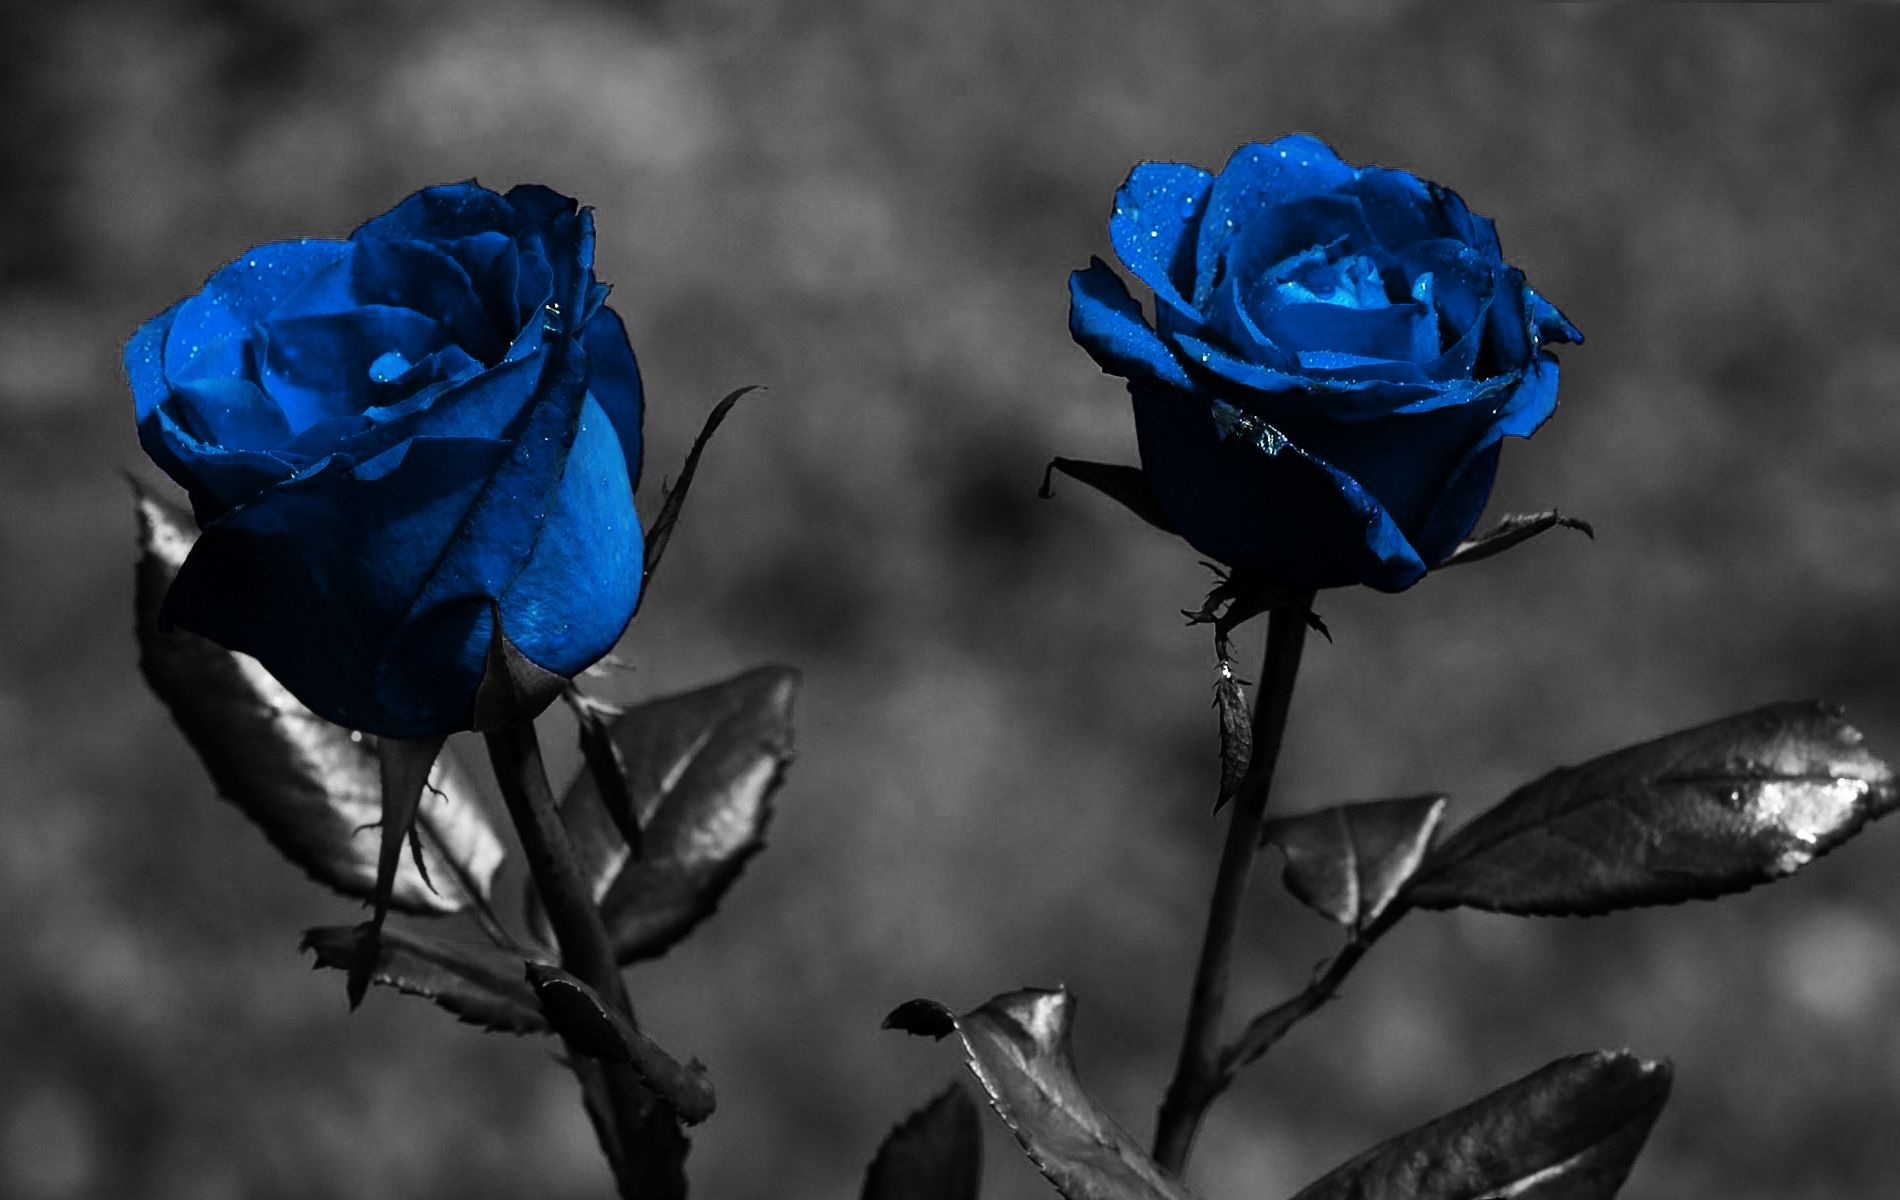 Widescreen Desktop Wallpaper Dark Flower Blue Roses Wallpaper Rose Flower Wallpaper Black Rose Flower